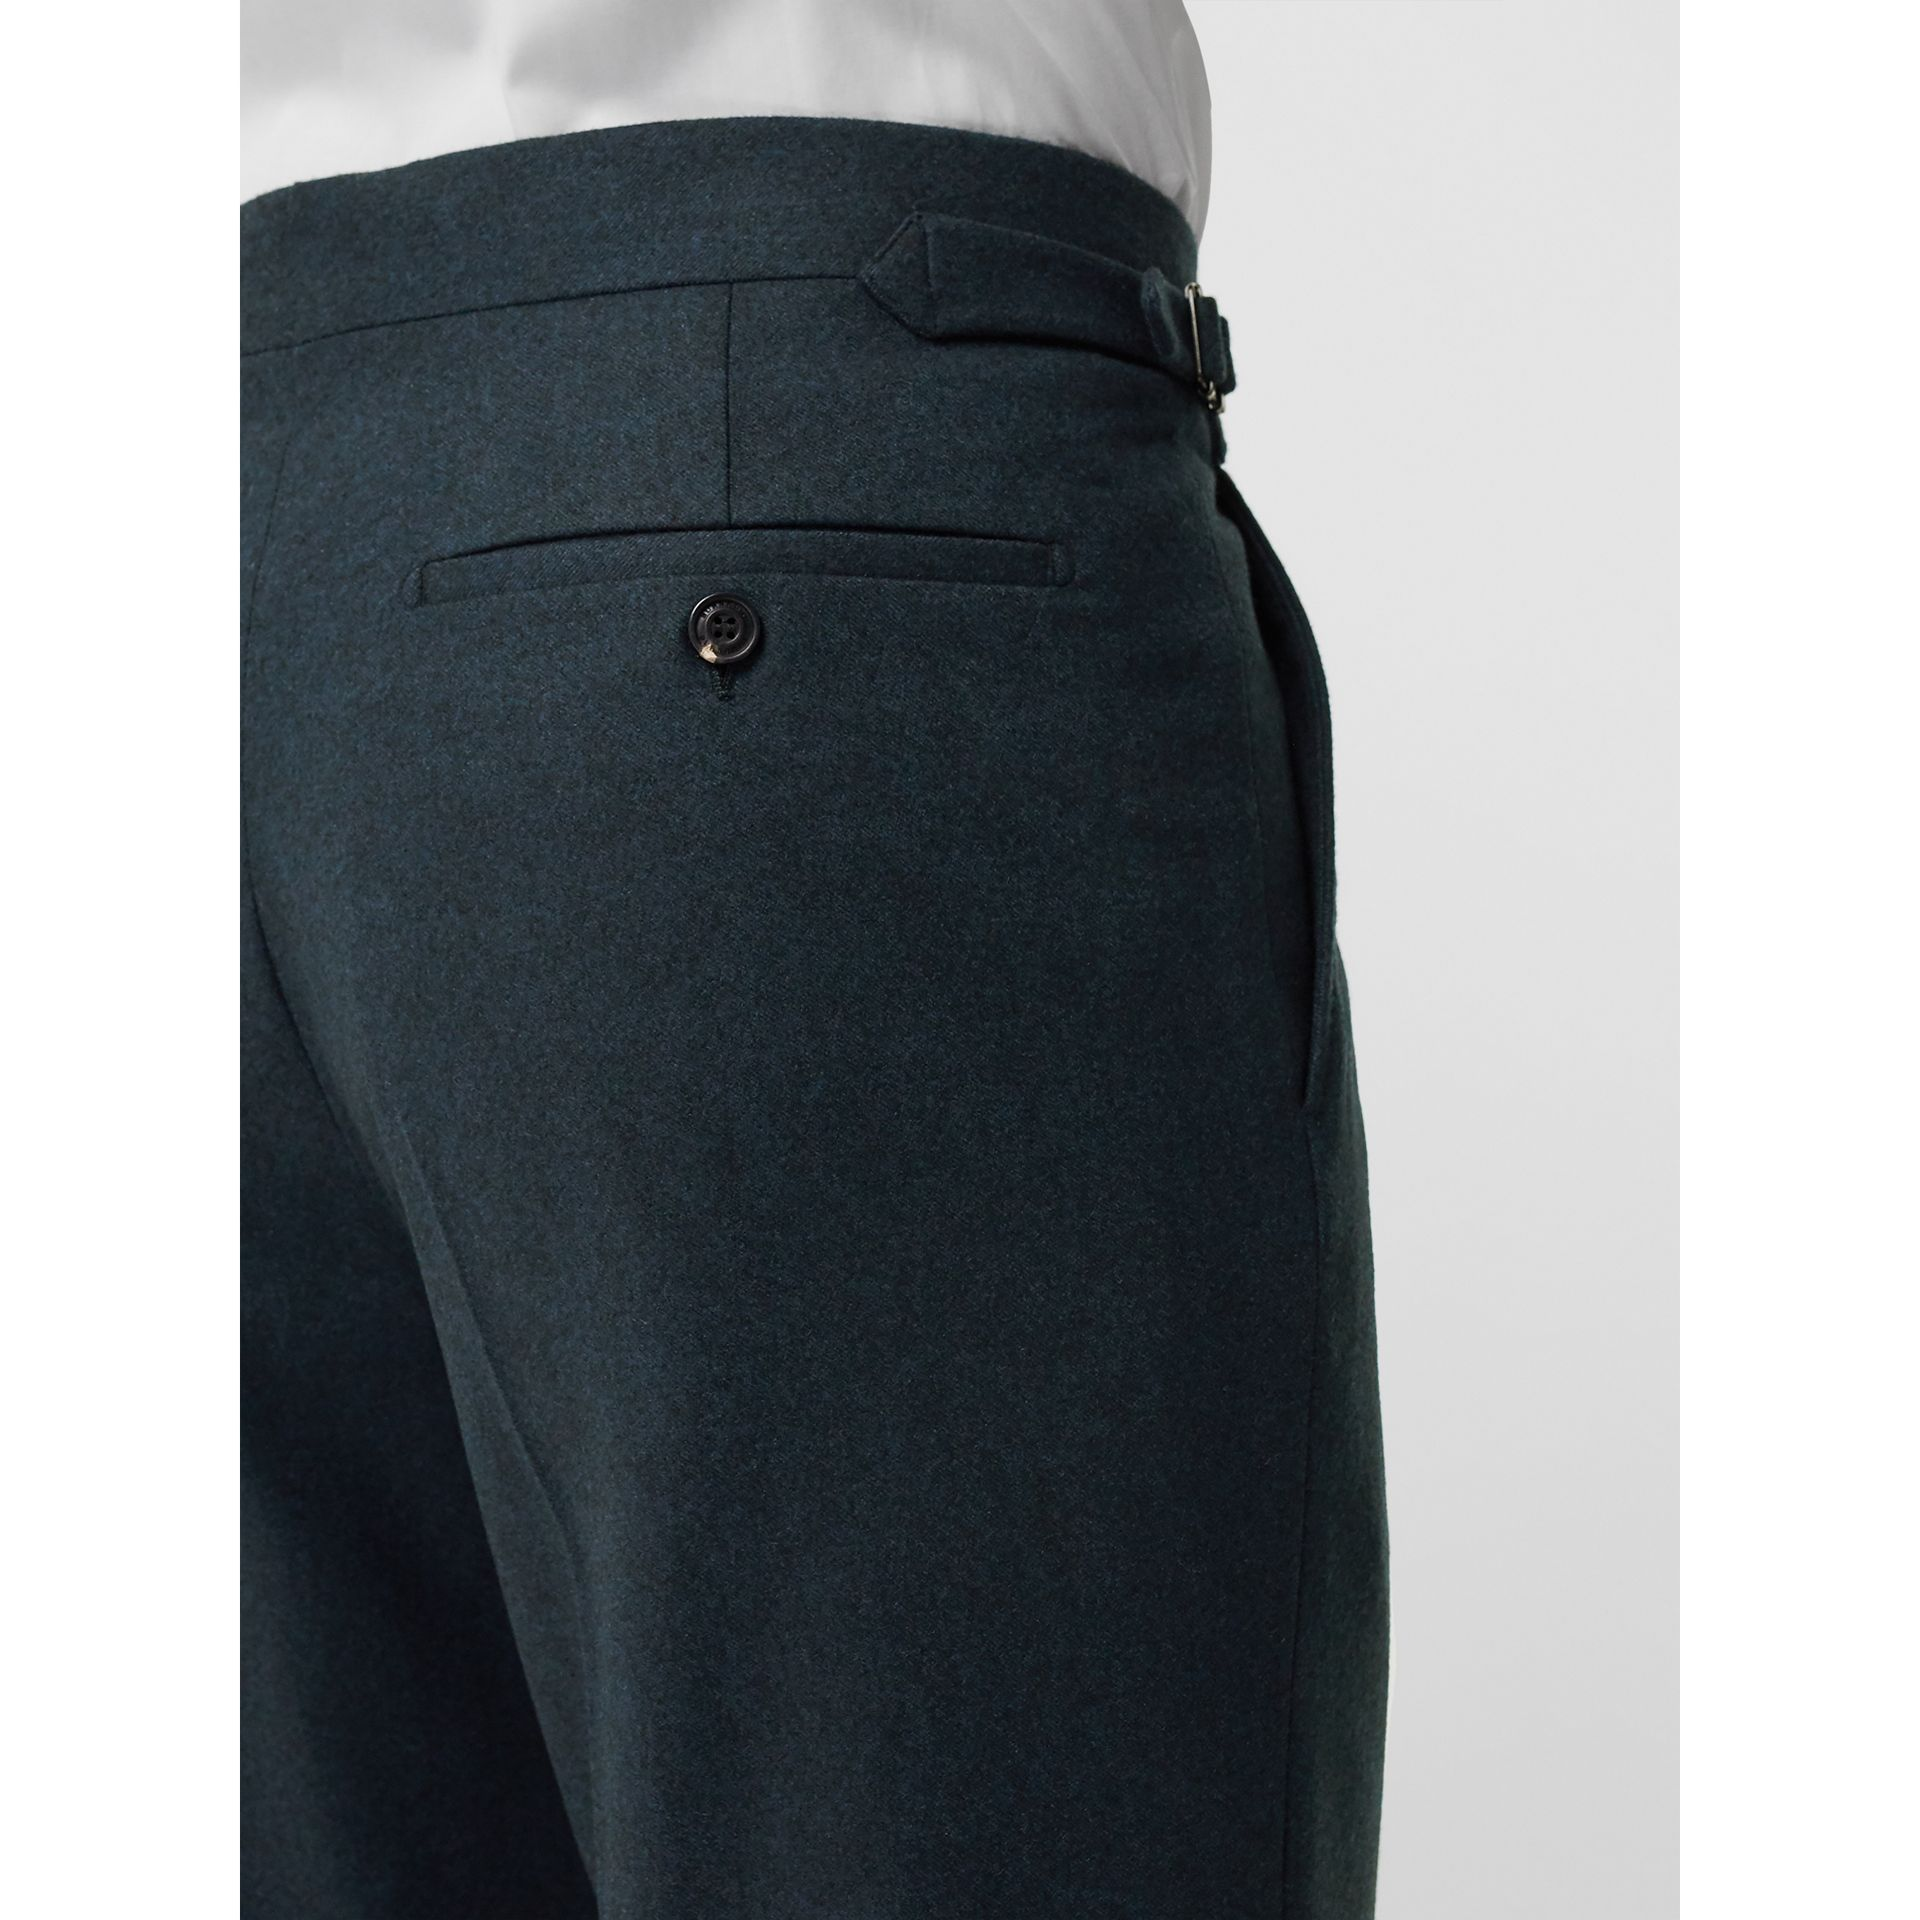 Classic Fit Wool Cashmere Tailored Trousers in Blue - Men | Burberry Canada - gallery image 1